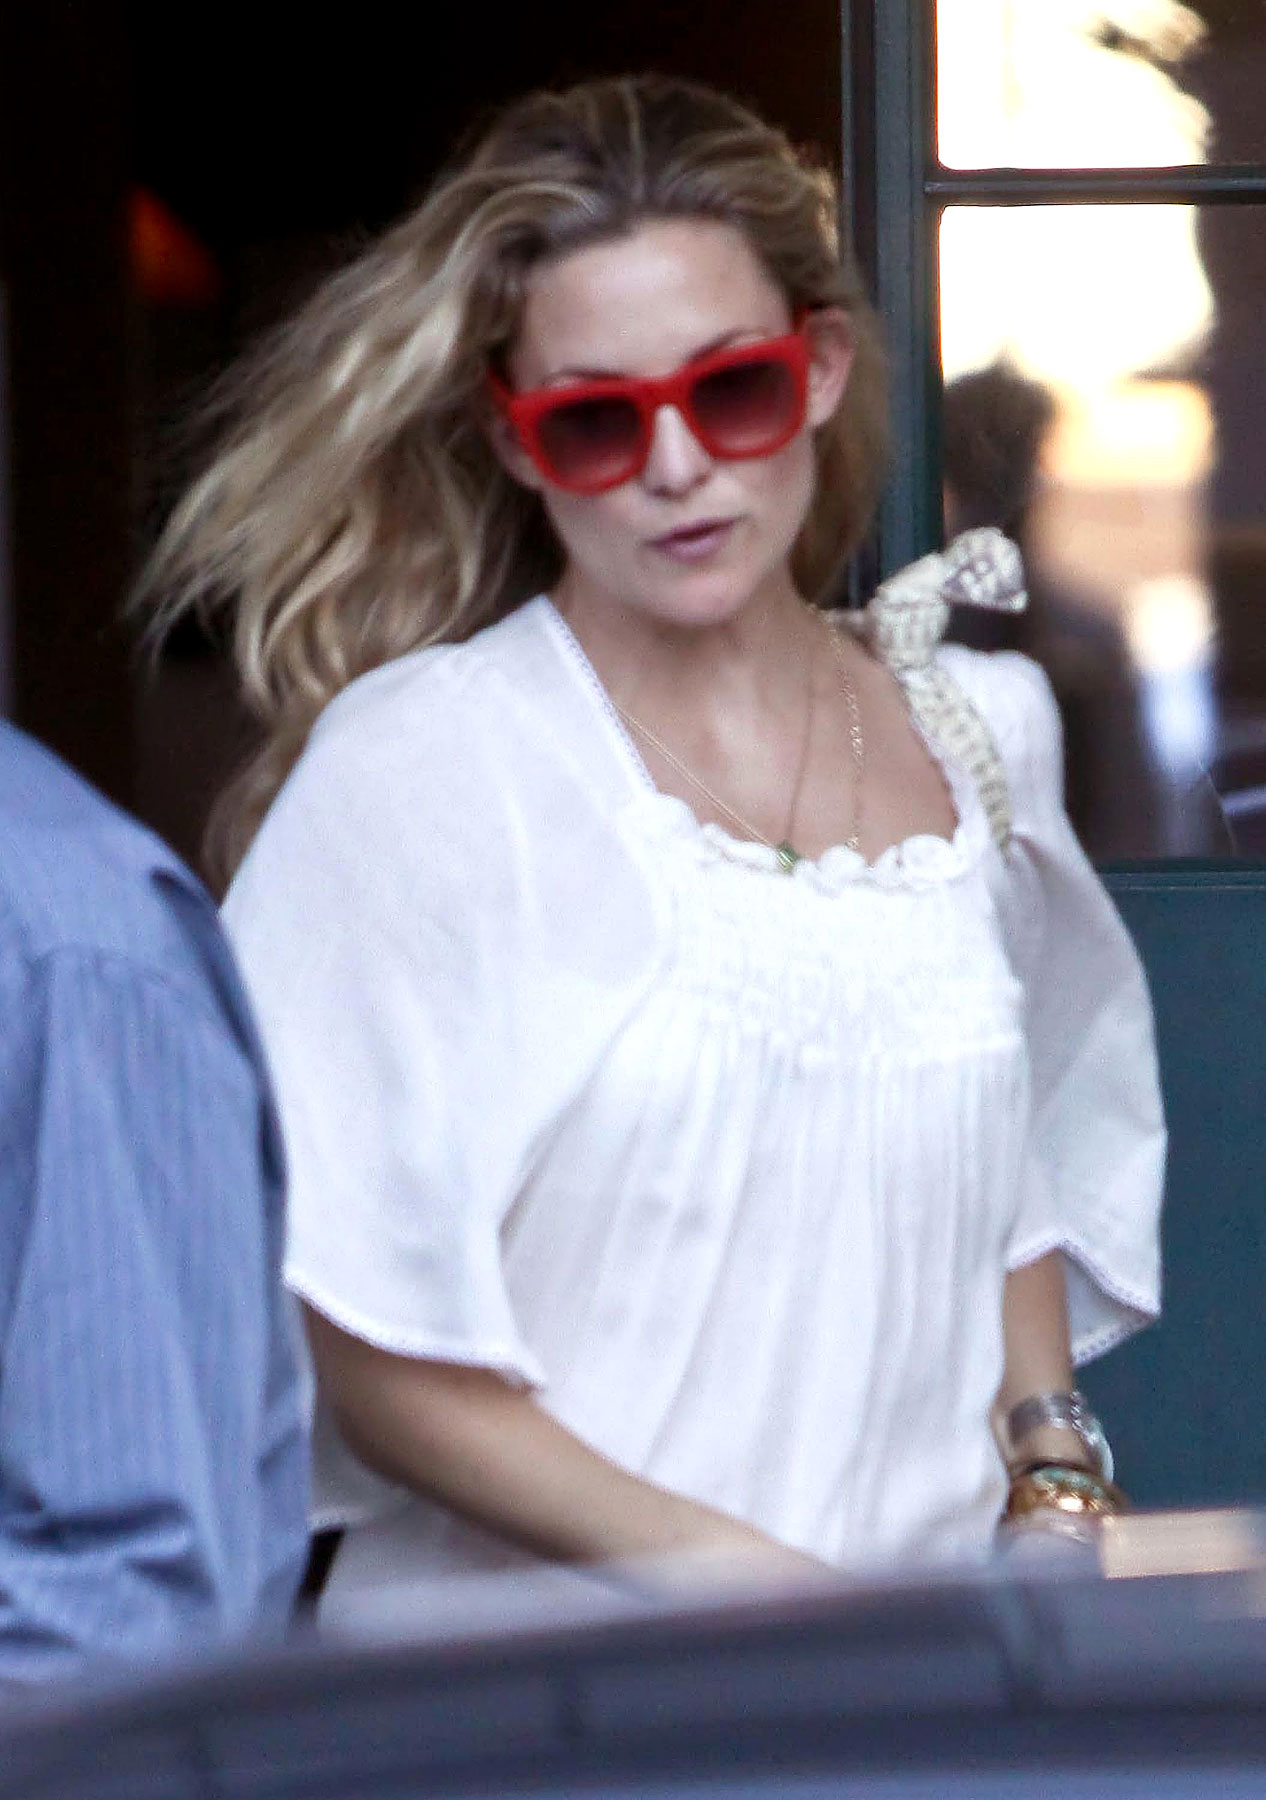 Kate Hudson's Studio Date With Matthew Bellamy (PHOTOS)